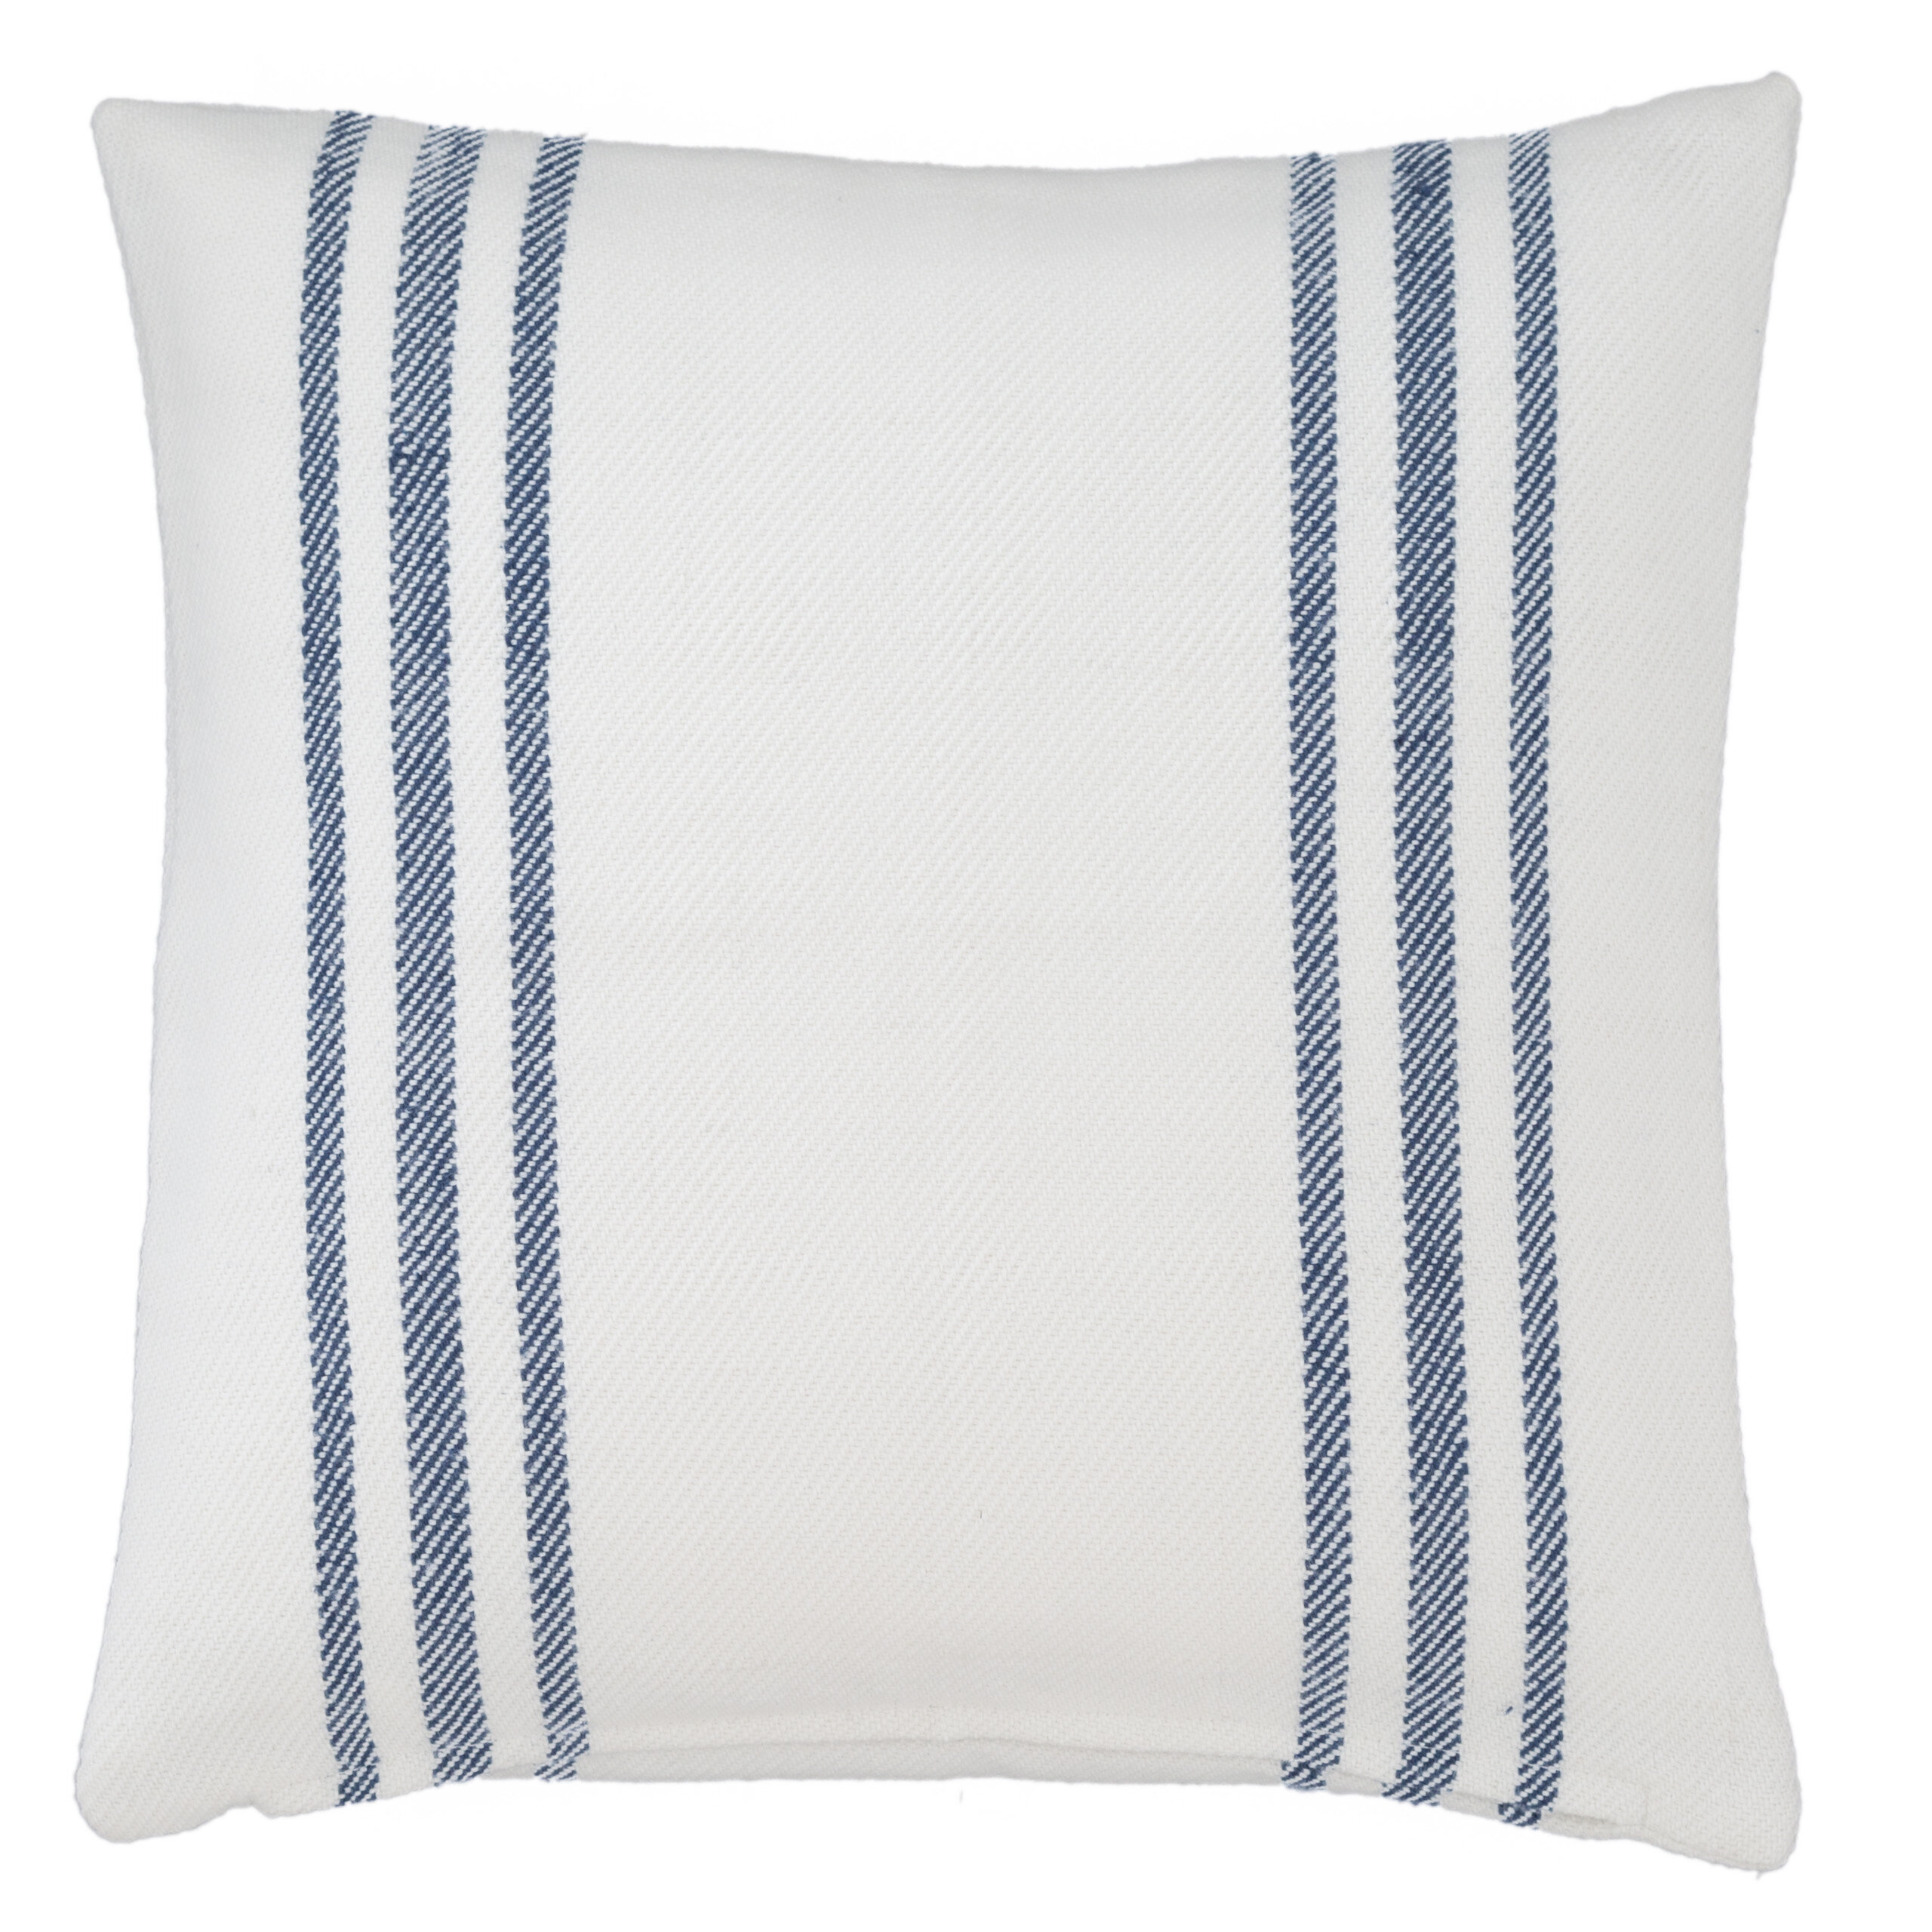 Lexington Outdoor Throw Pillow Reviews Birch Lane